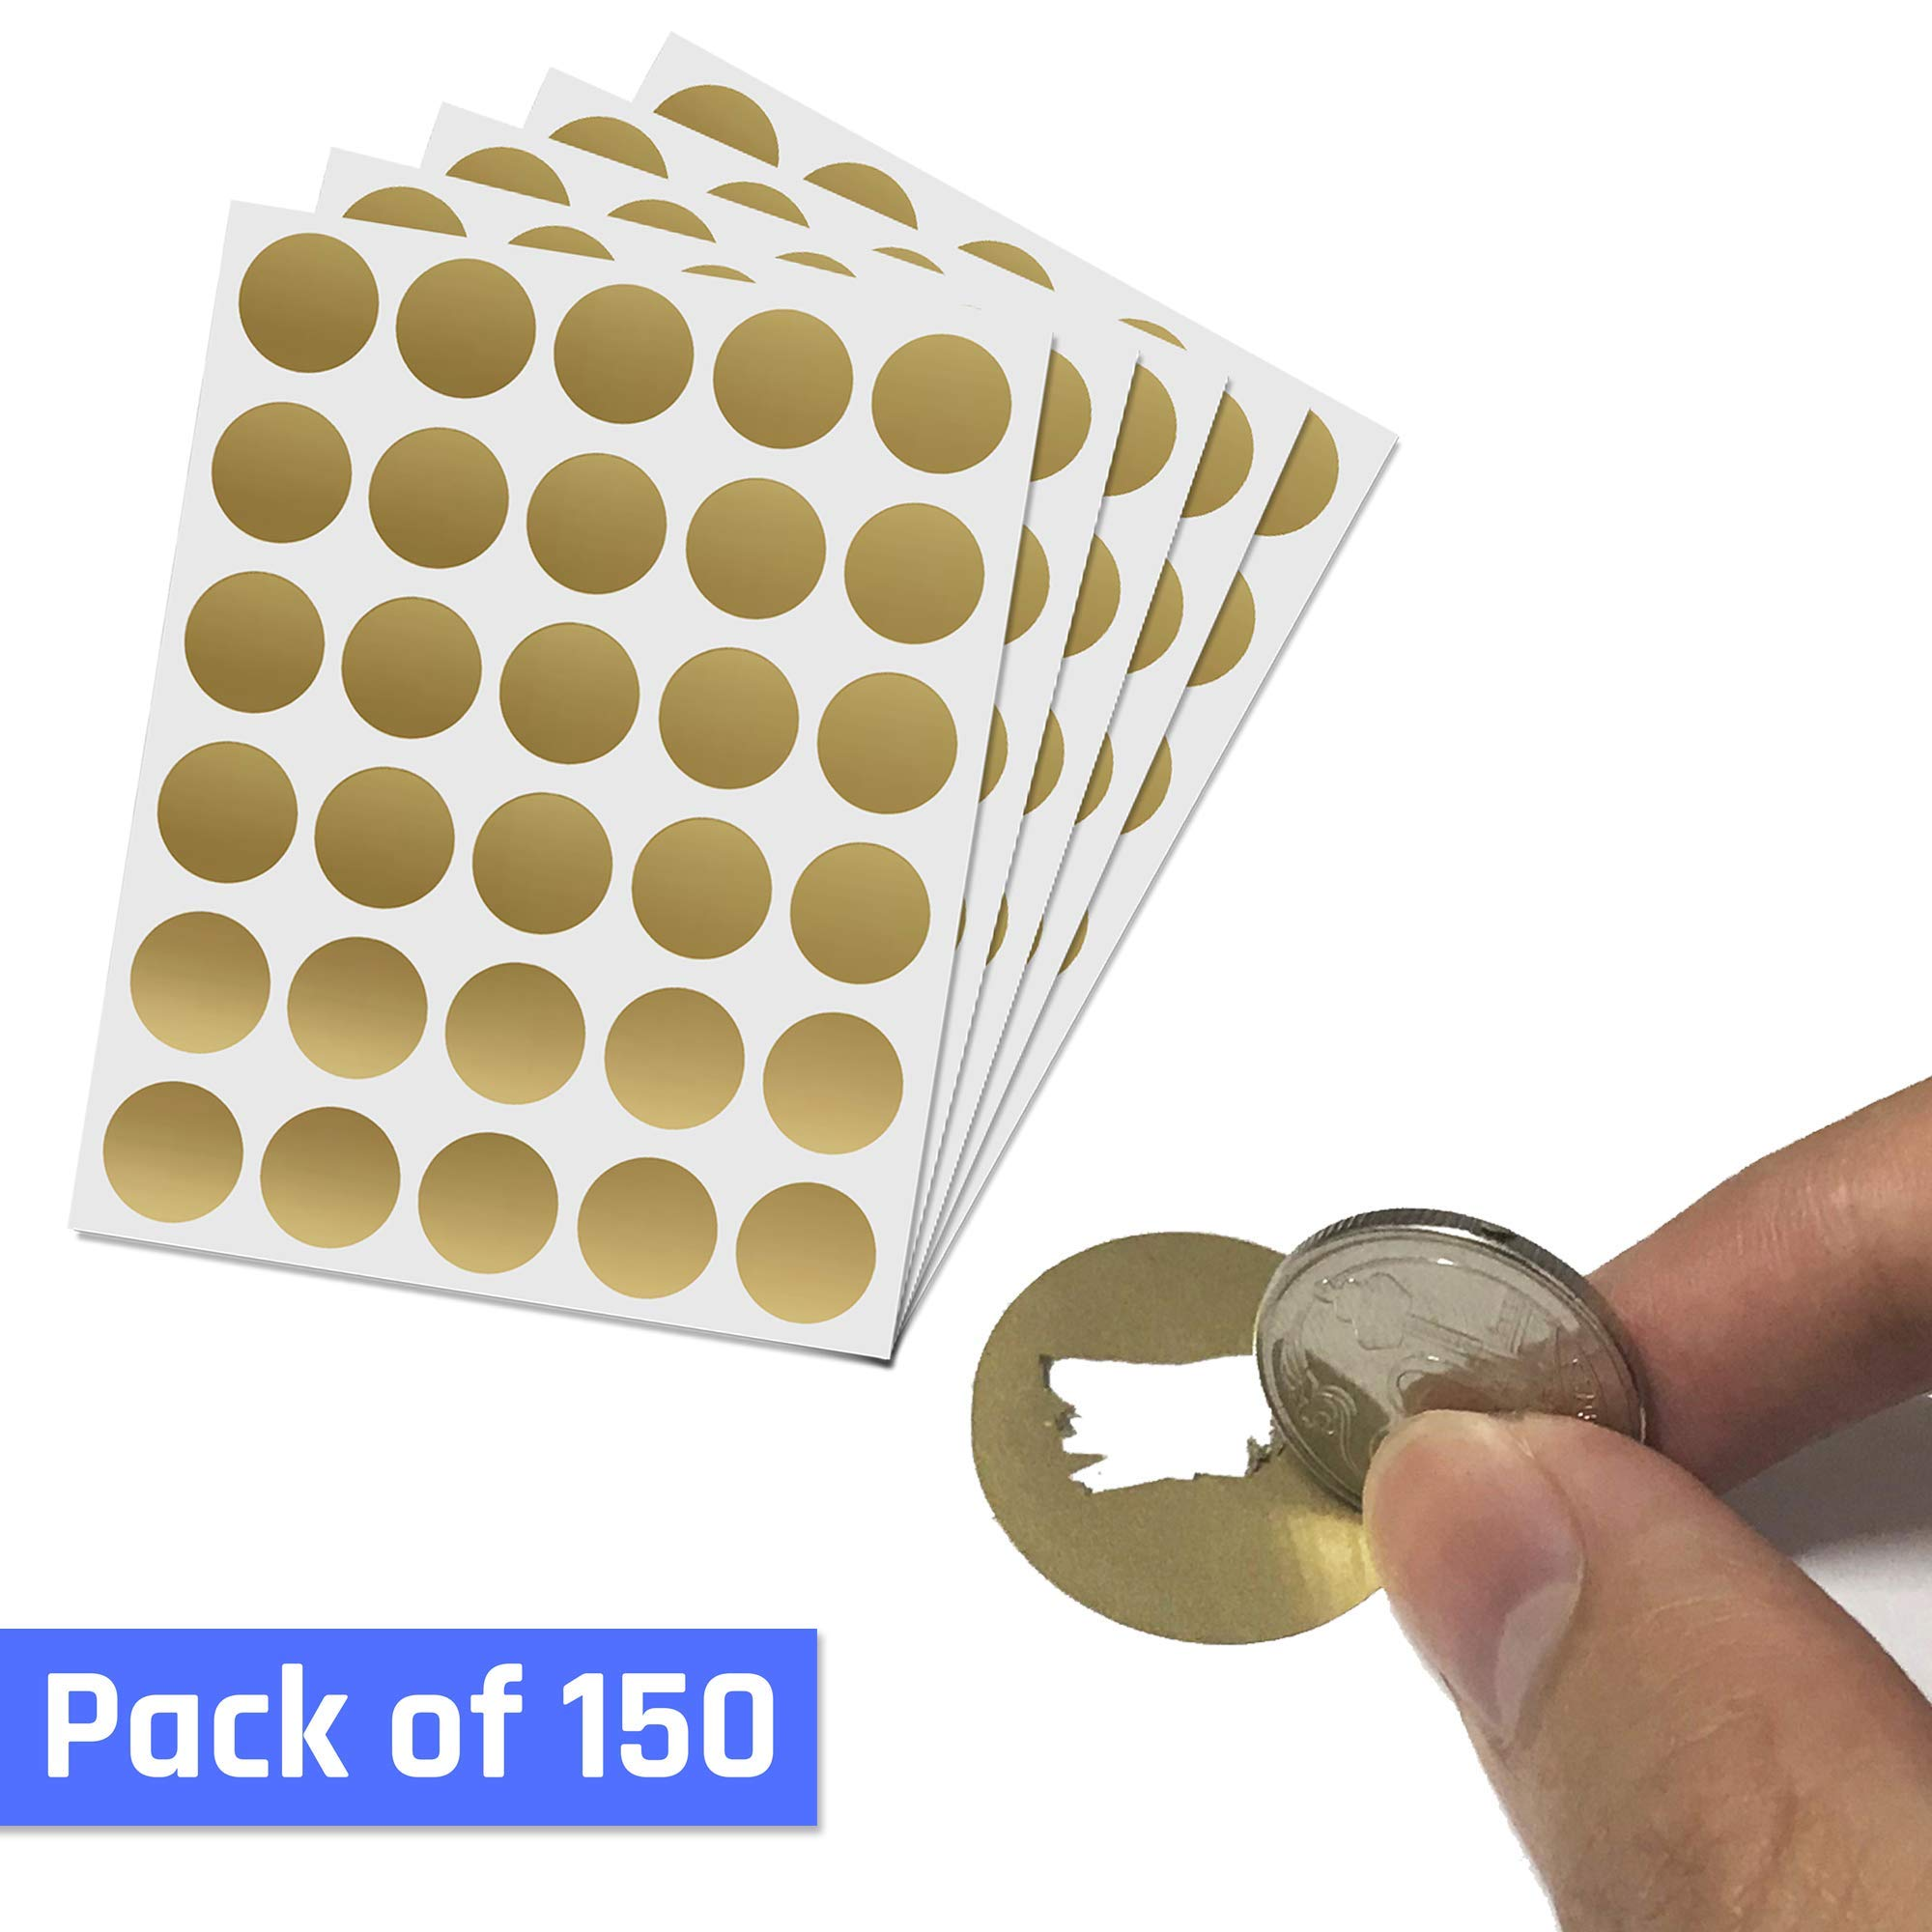 1'' Scratch Off Sticker Labels - Gold Round Circle, Pack of 150 by ScratchStix (Image #8)